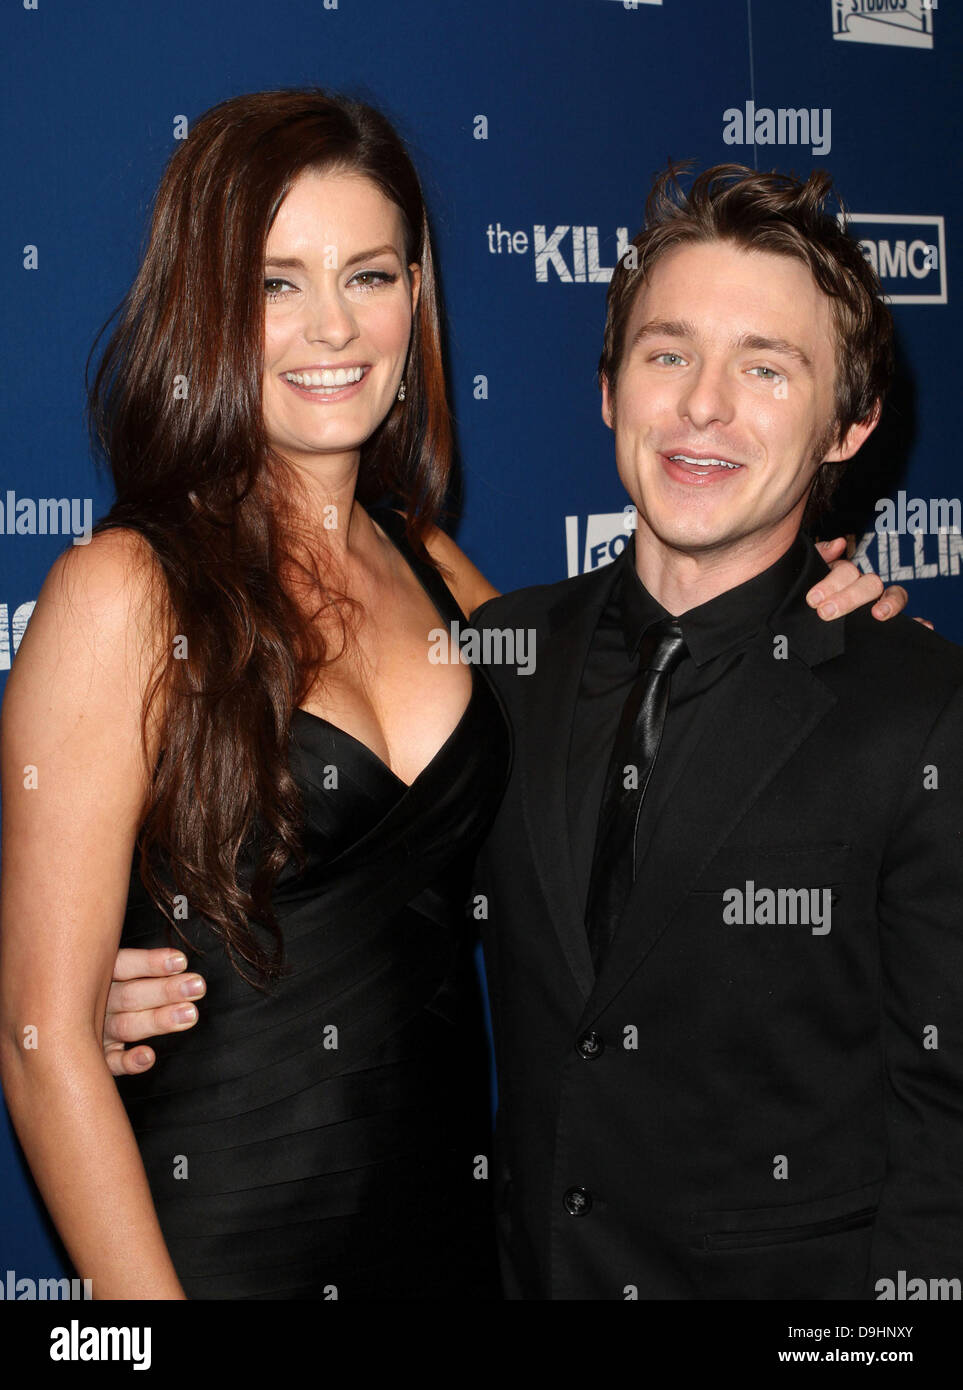 Jamie Anne Allman, Marshall Allman Premiere Of AMC's Series 'The Killing' held at the Harmony Gold Theater - Stock Image